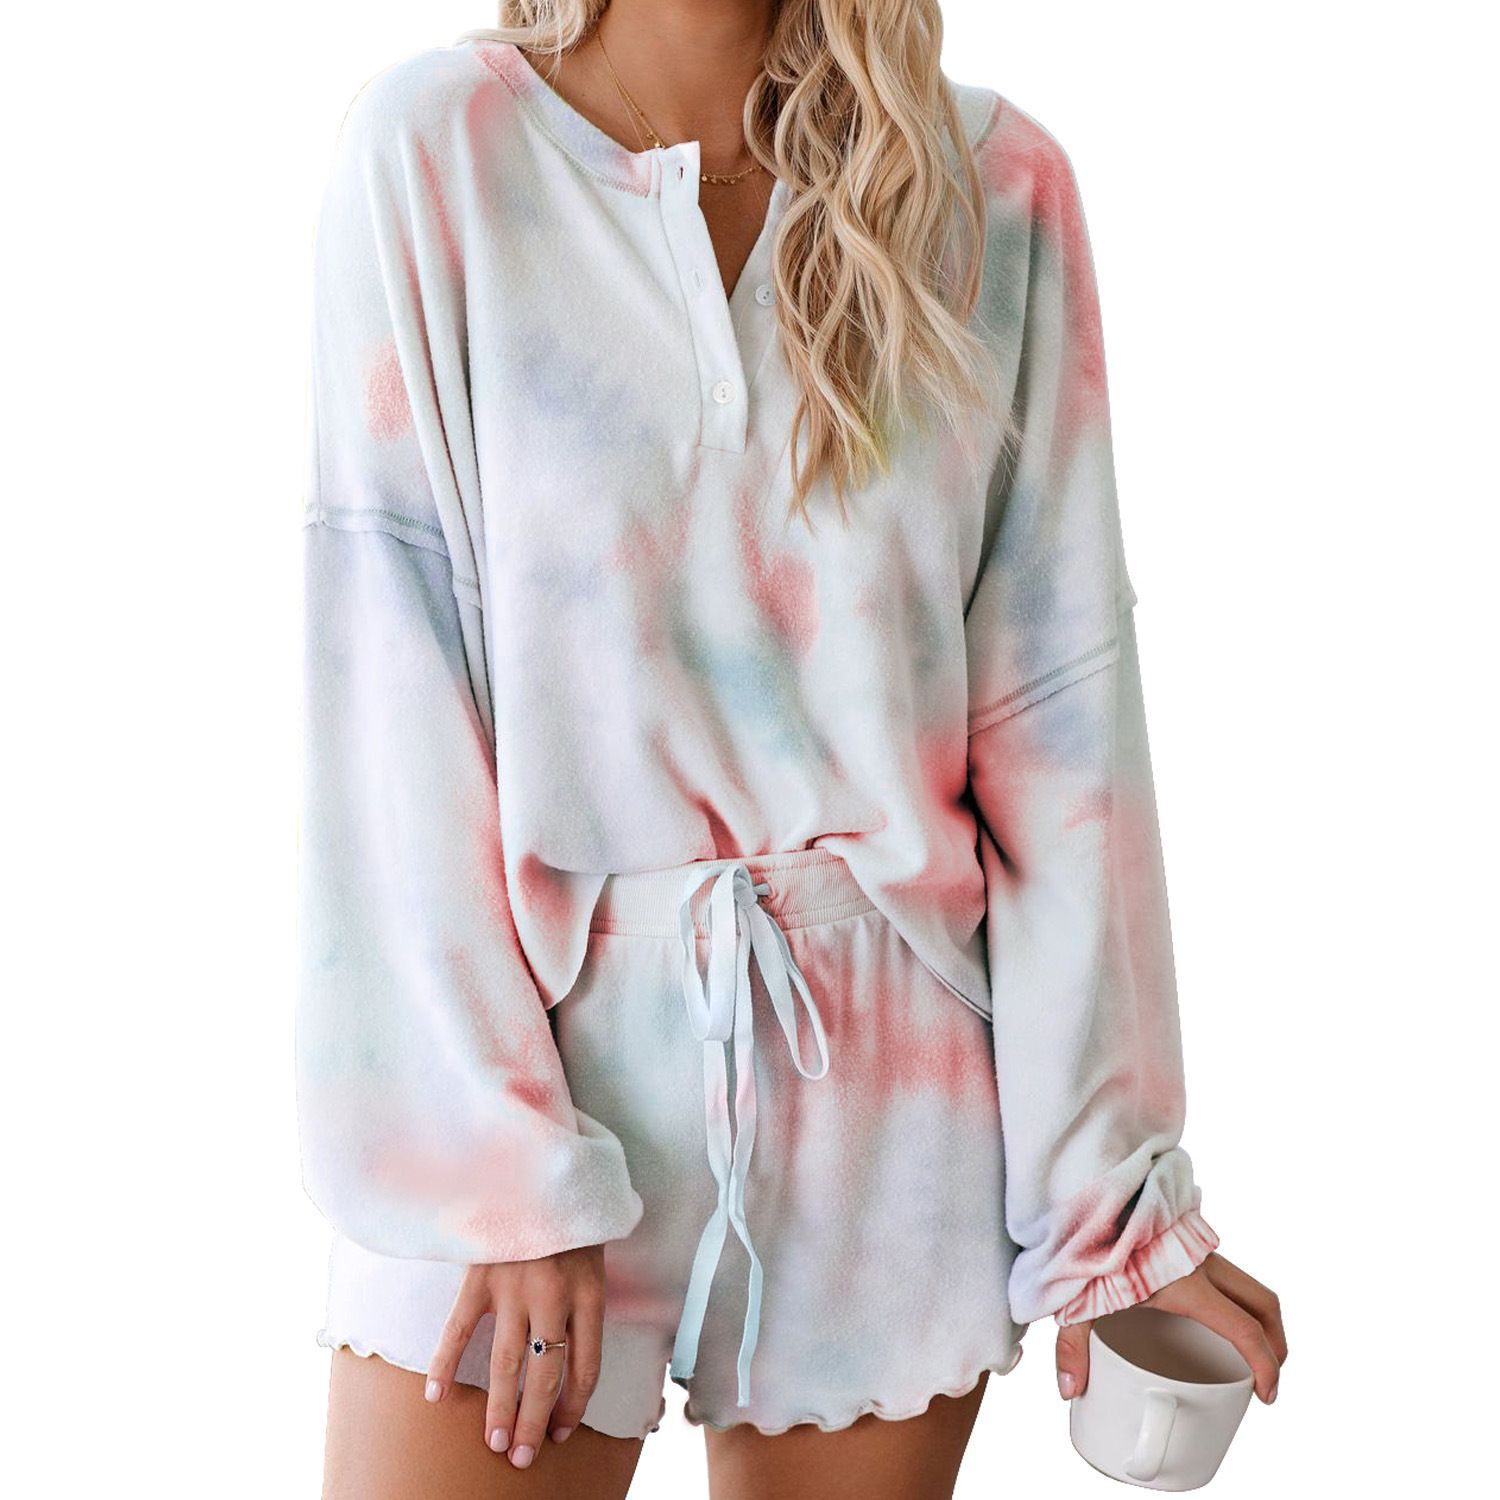 2020 New Women's Sets Summer Tie-Dye Printing Leisure Sports Long Sleeve Top + Shorts Two Piece Sets Female Sweat Suits Clothing